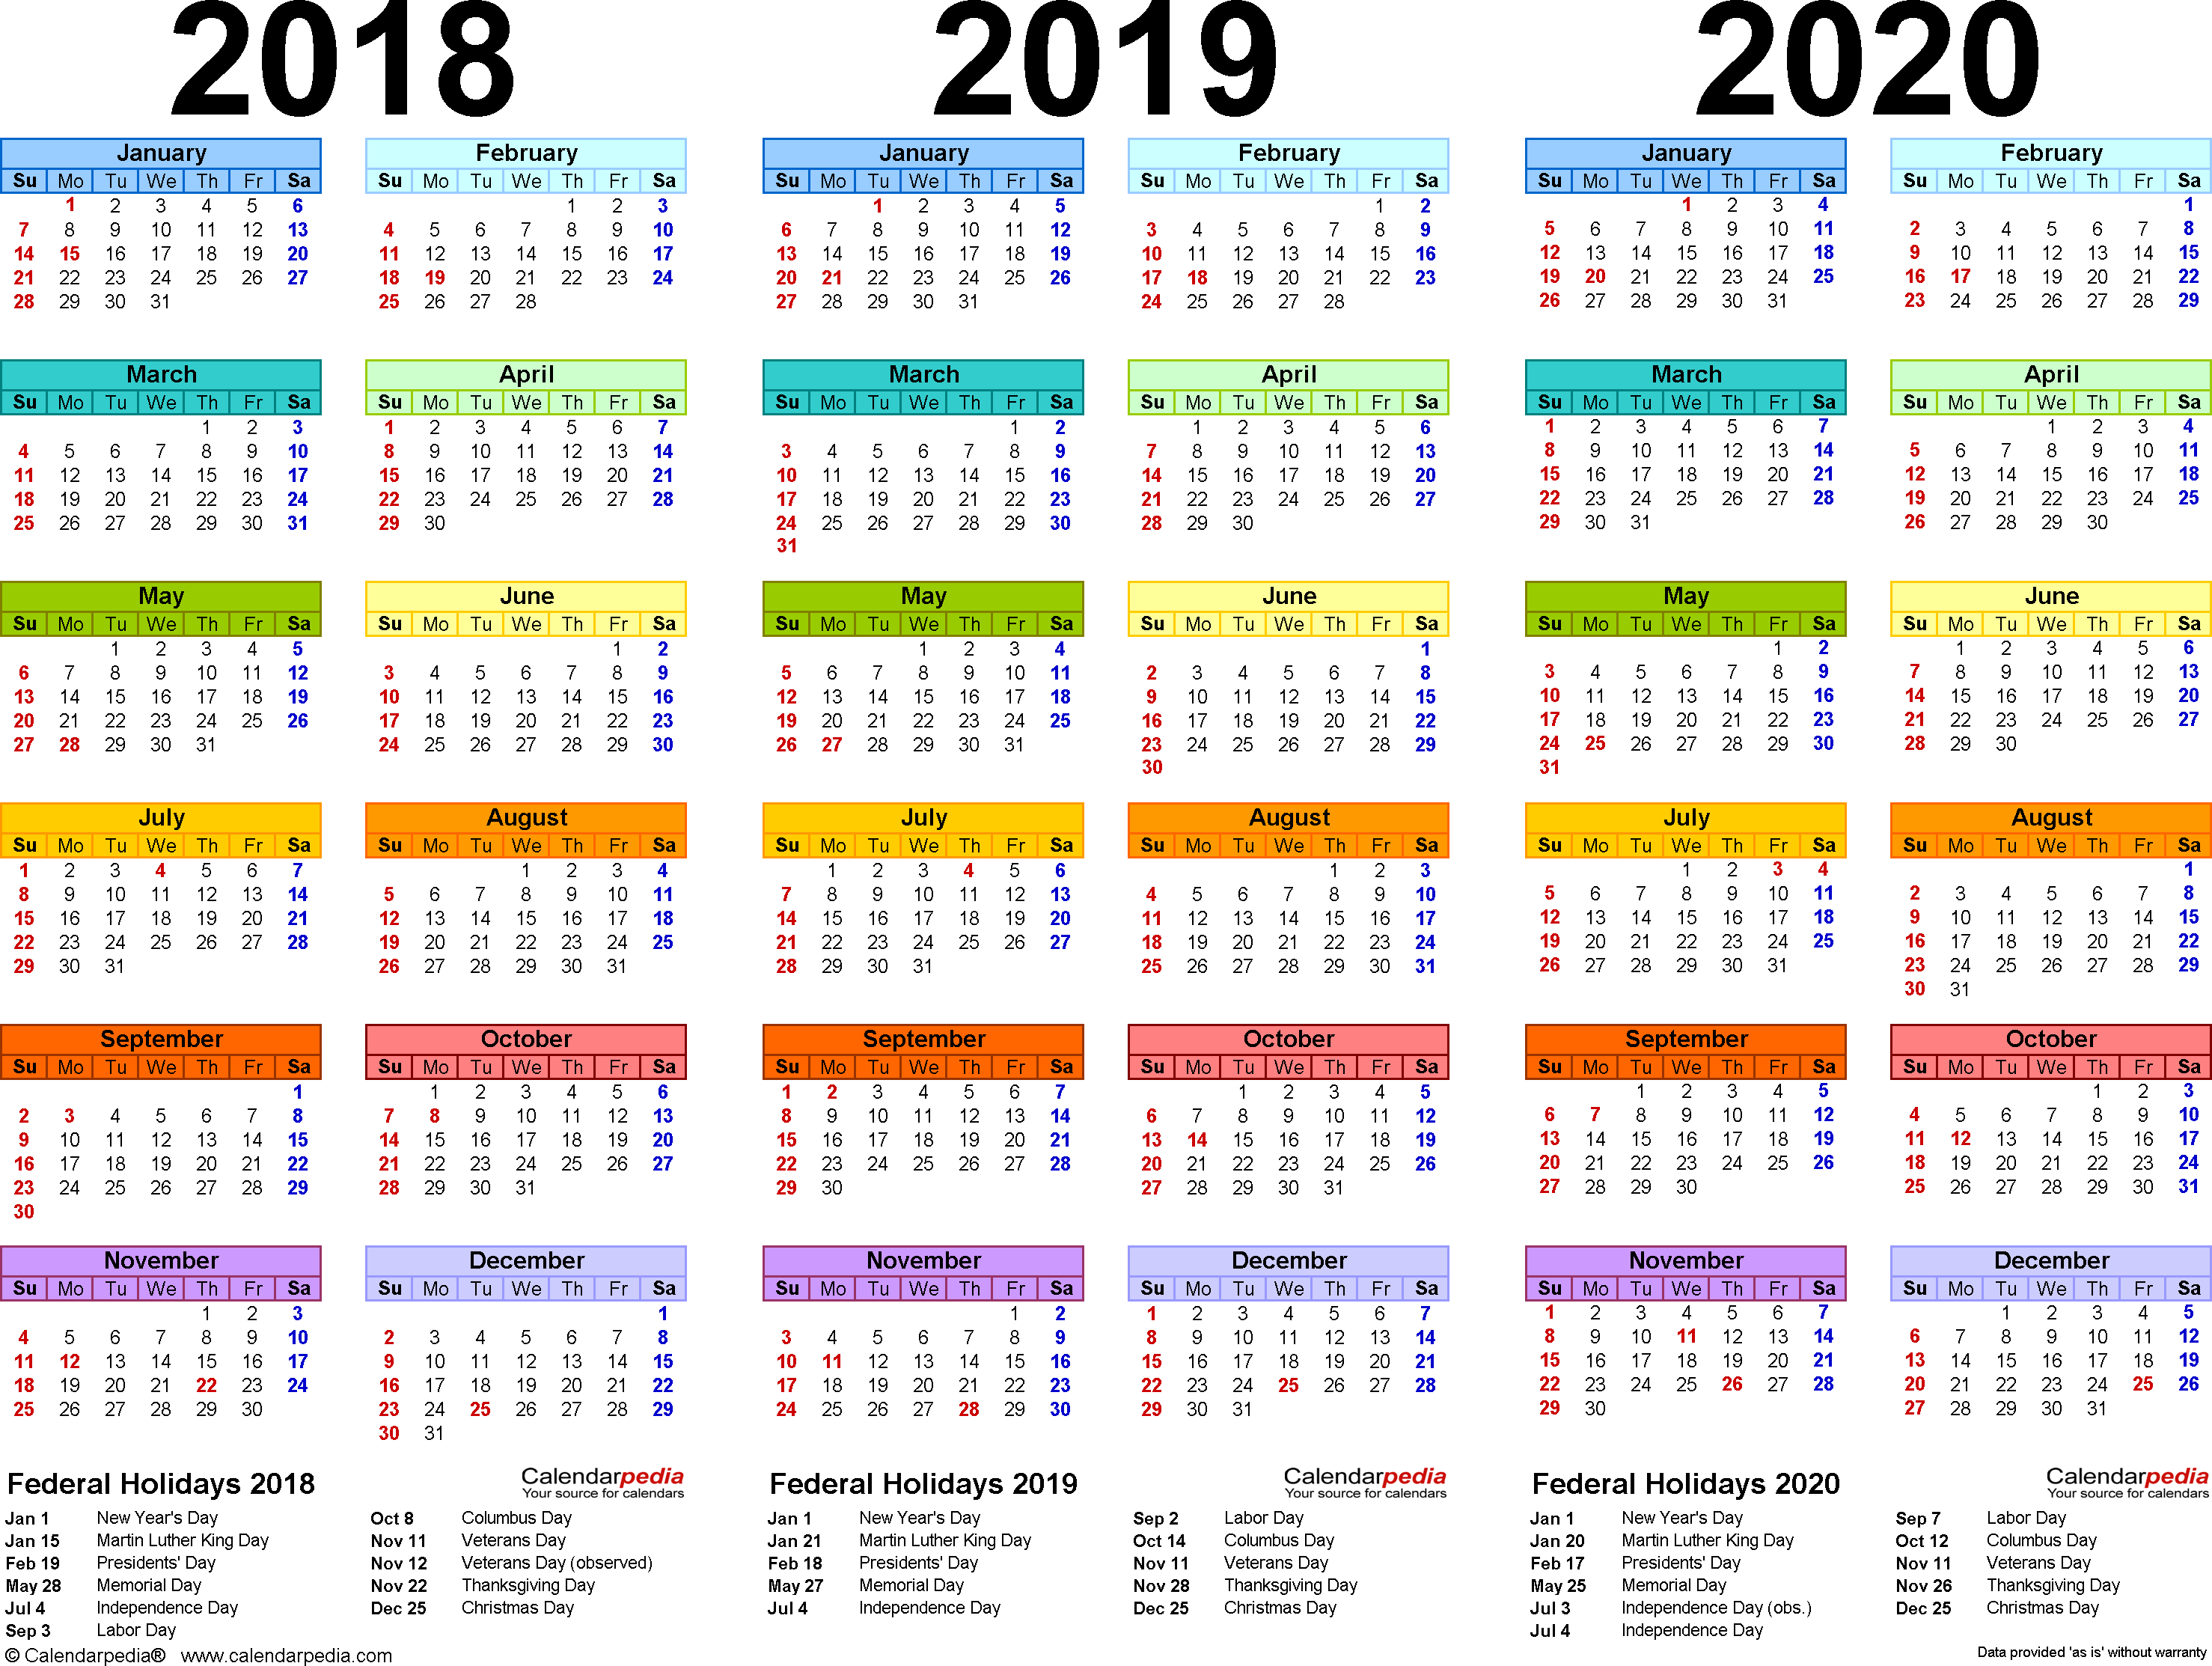 Next Year Calendar 2019 With Holidays 2018 2020 4 Three Printable PDF Calendars